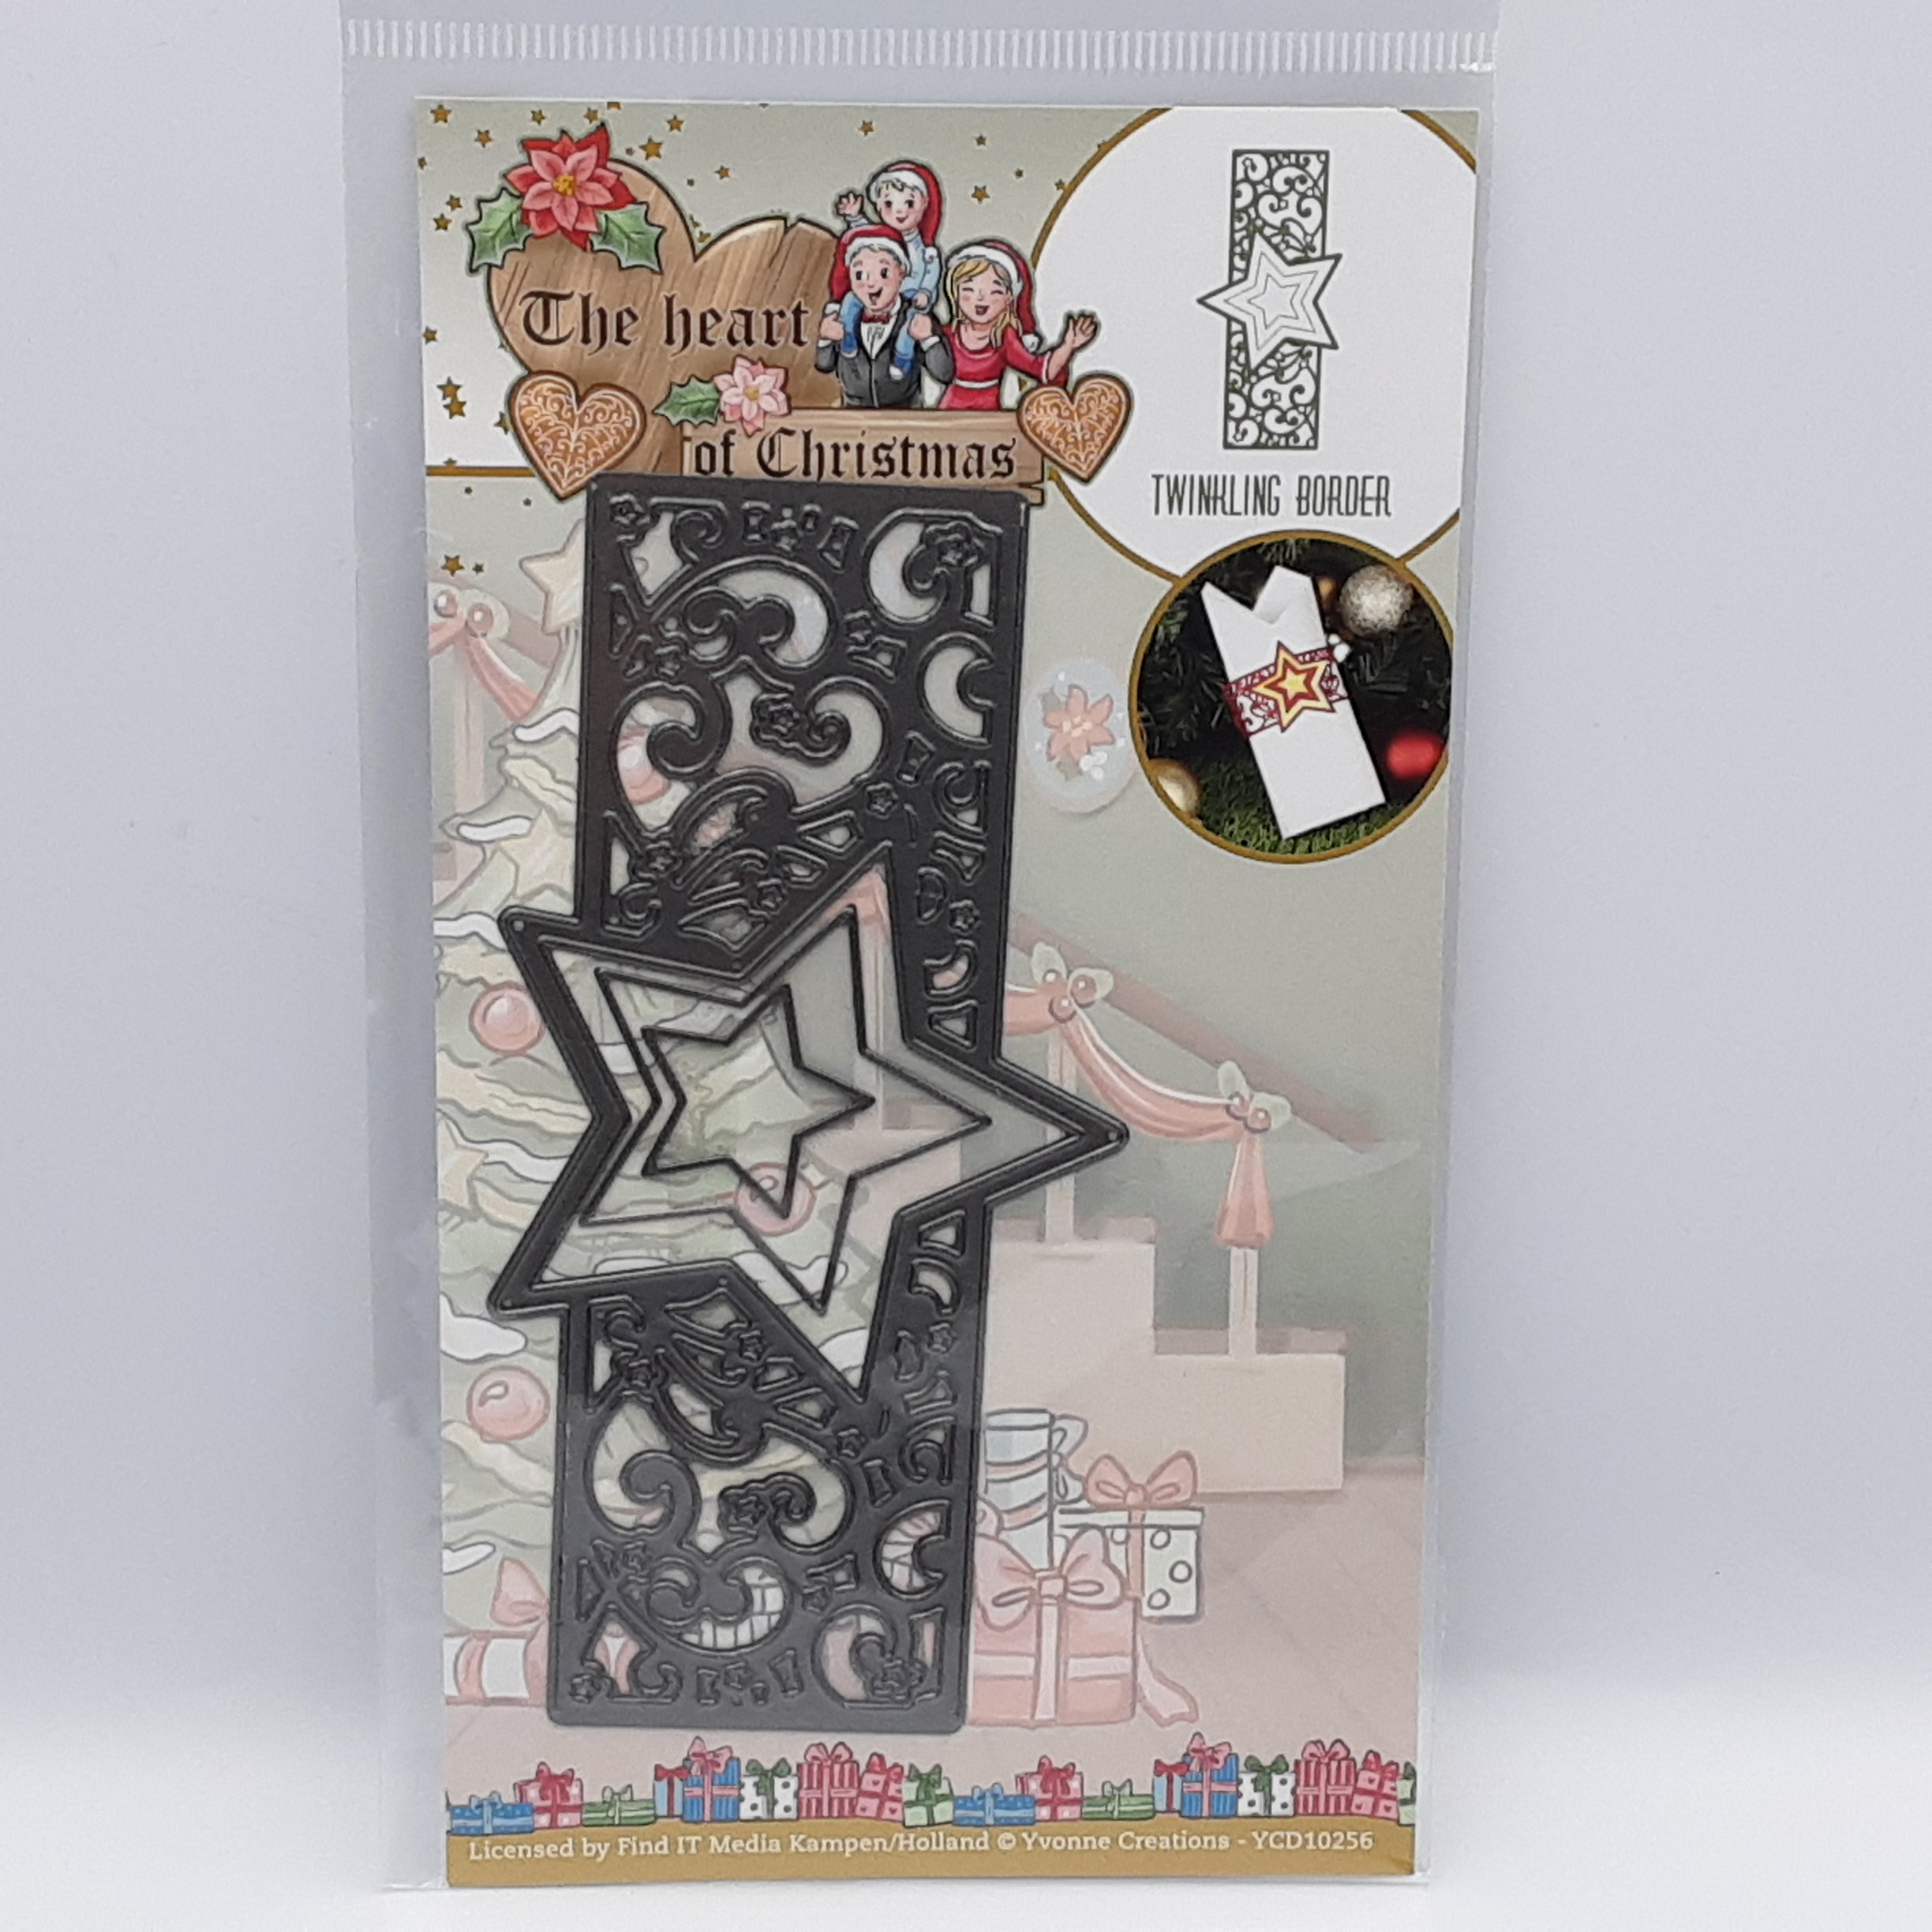 The heart of christmas Twinkling border